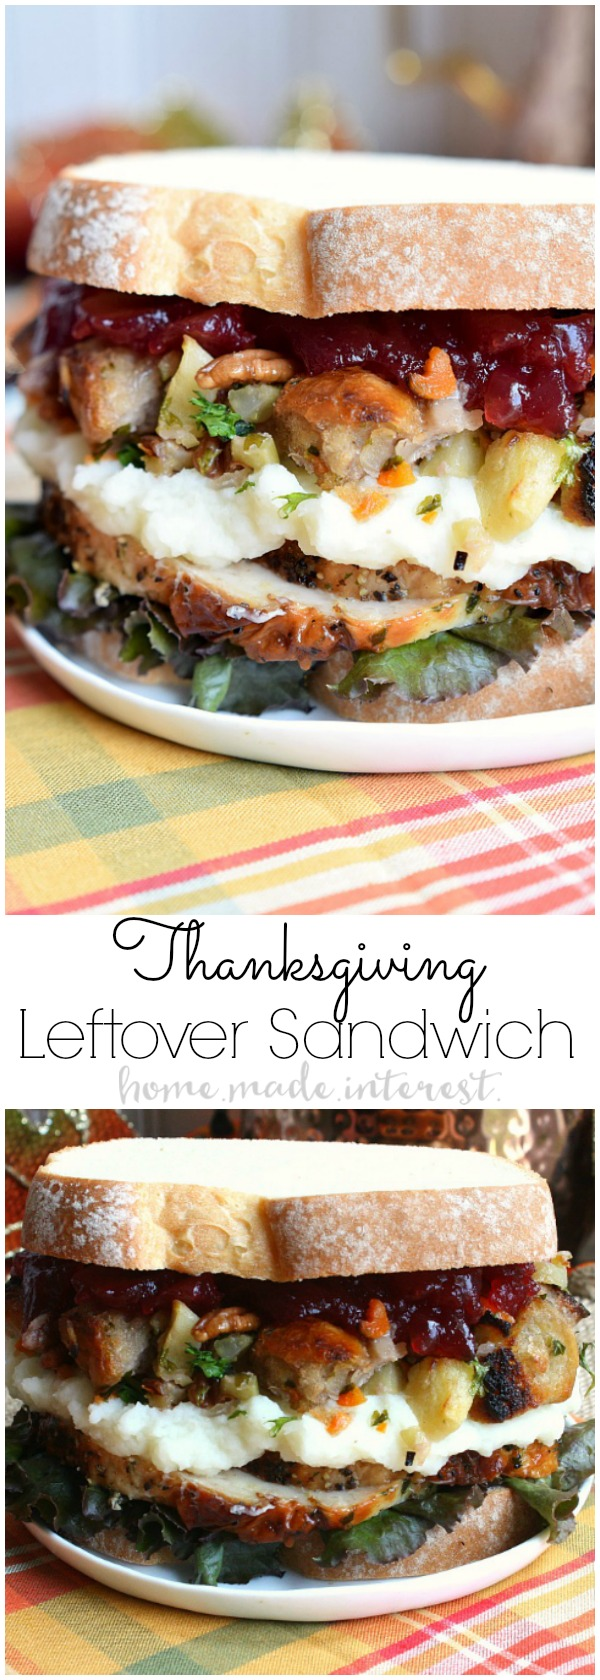 Thanksgiving leftovers sandwich home made interest for Leftover thanksgiving turkey recipes